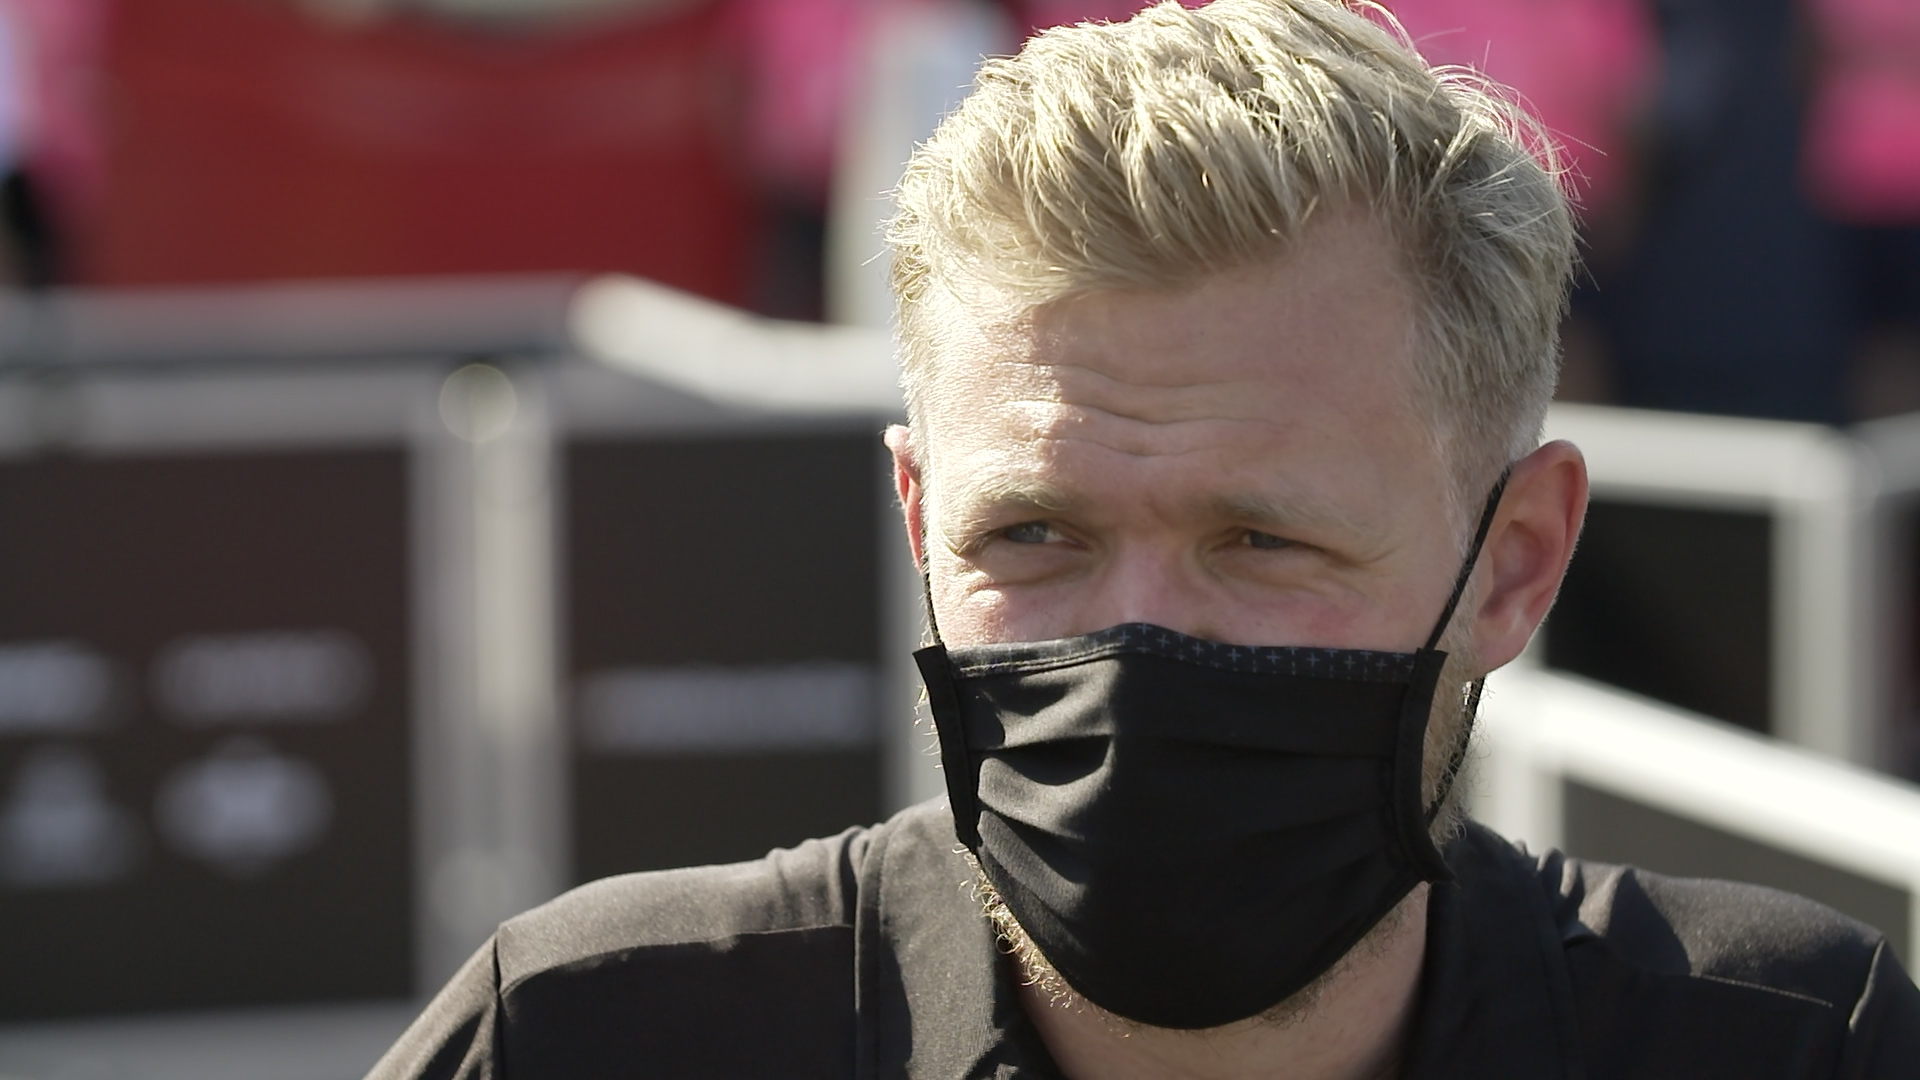 Kevin Magnussen Gutted To Miss Out On Eventful Race Sparked By His Own Retirement At Monza Formula 1